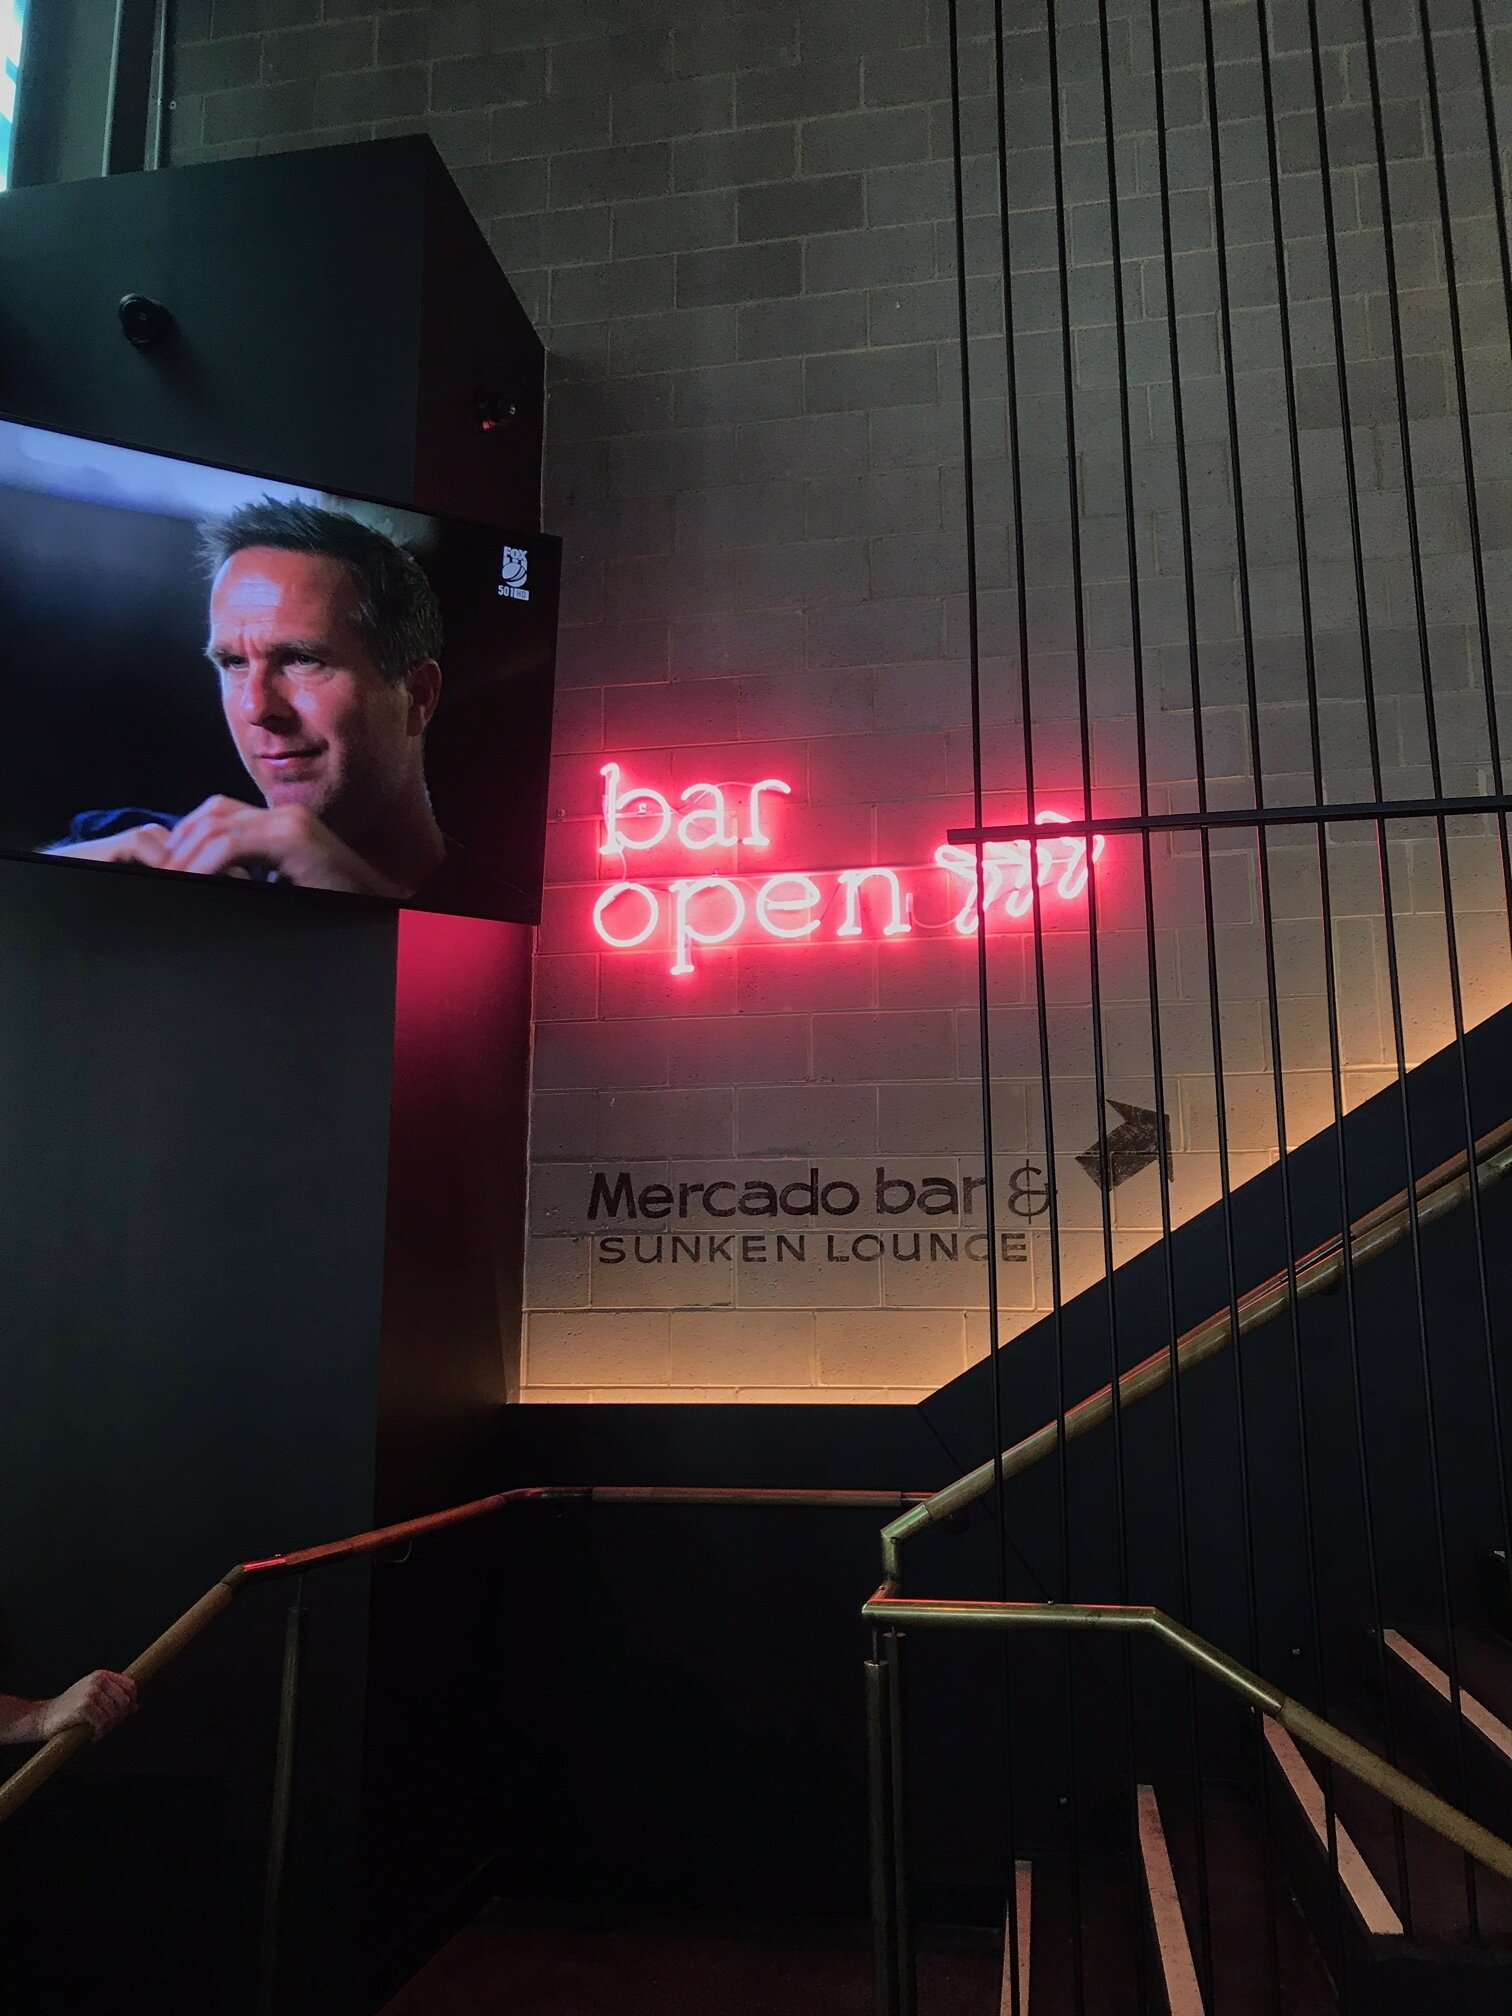 Glass blown hot pink neon letters and arrows for Mercado bar at Market Grounds, Perth City.